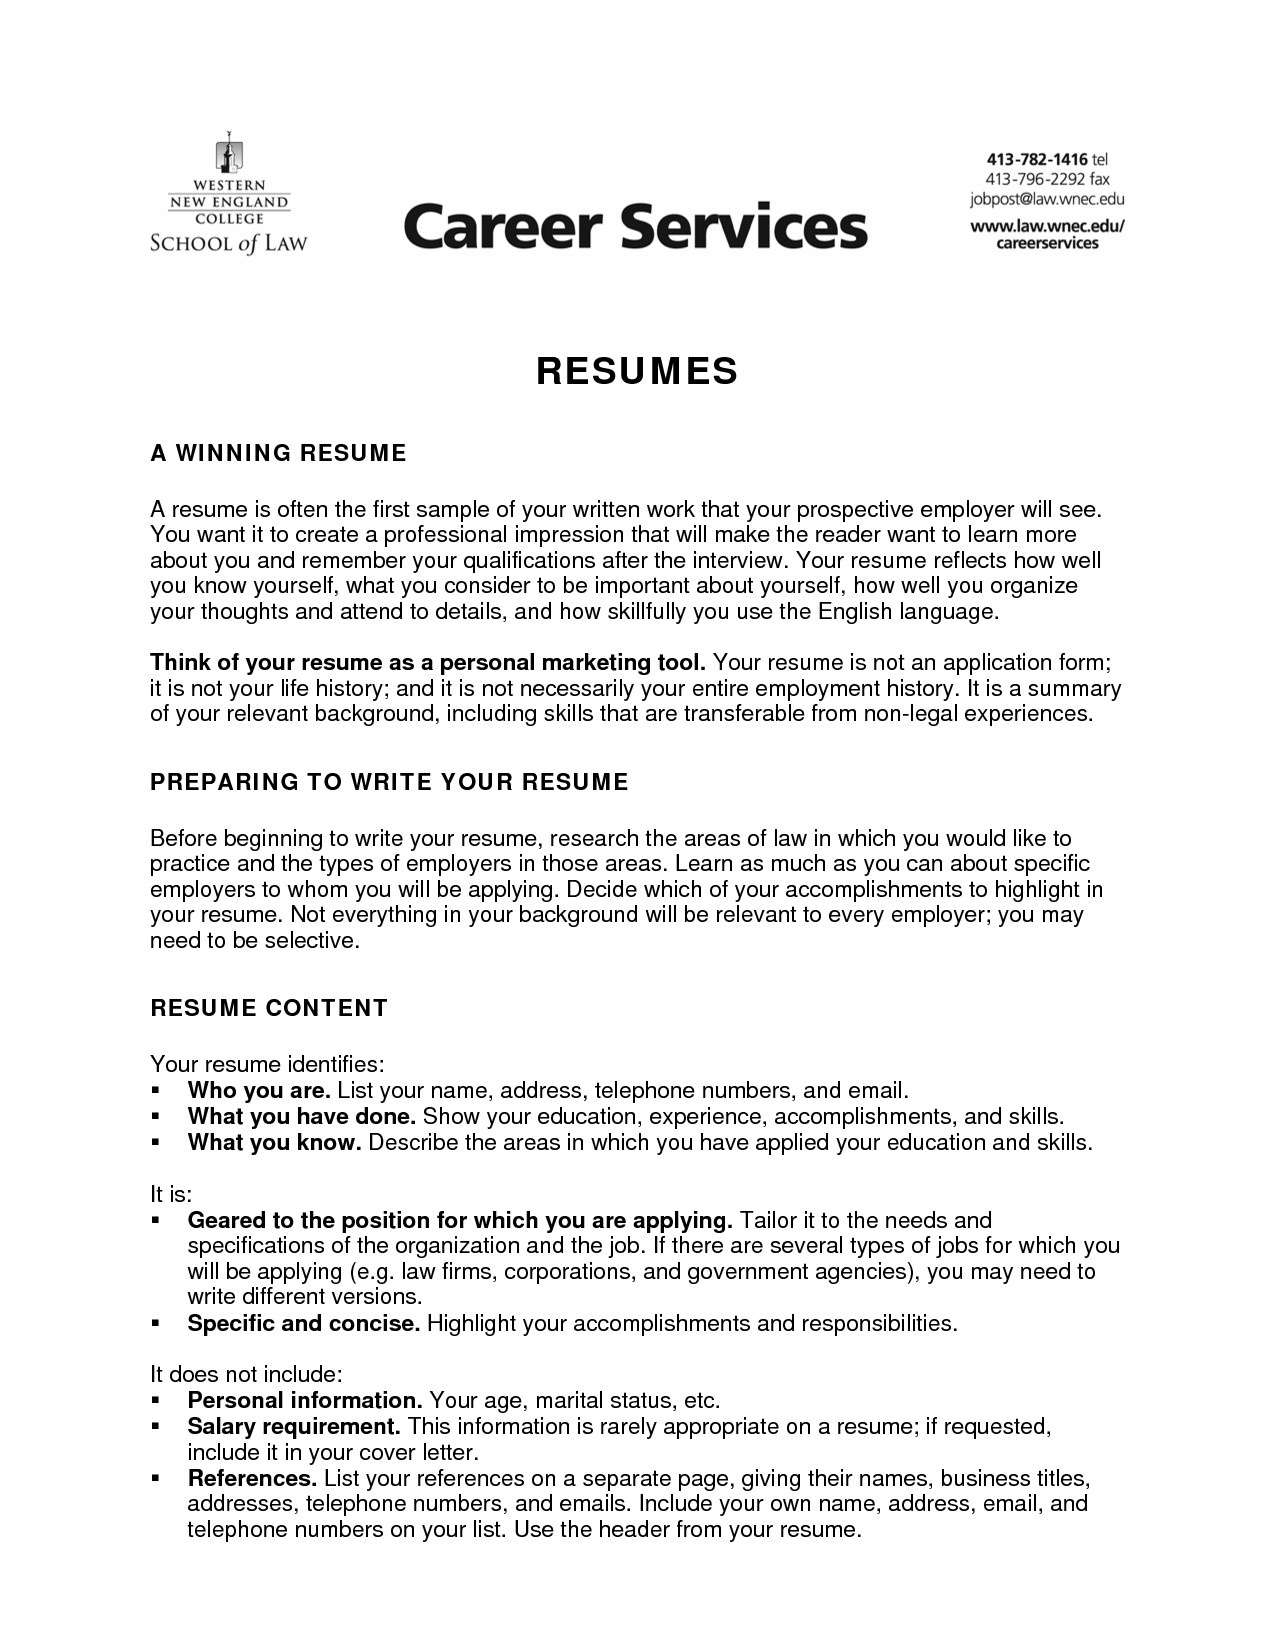 Nursing Resume Objective - Nursing Resume Objective Examples Best Elegant Good Nursing